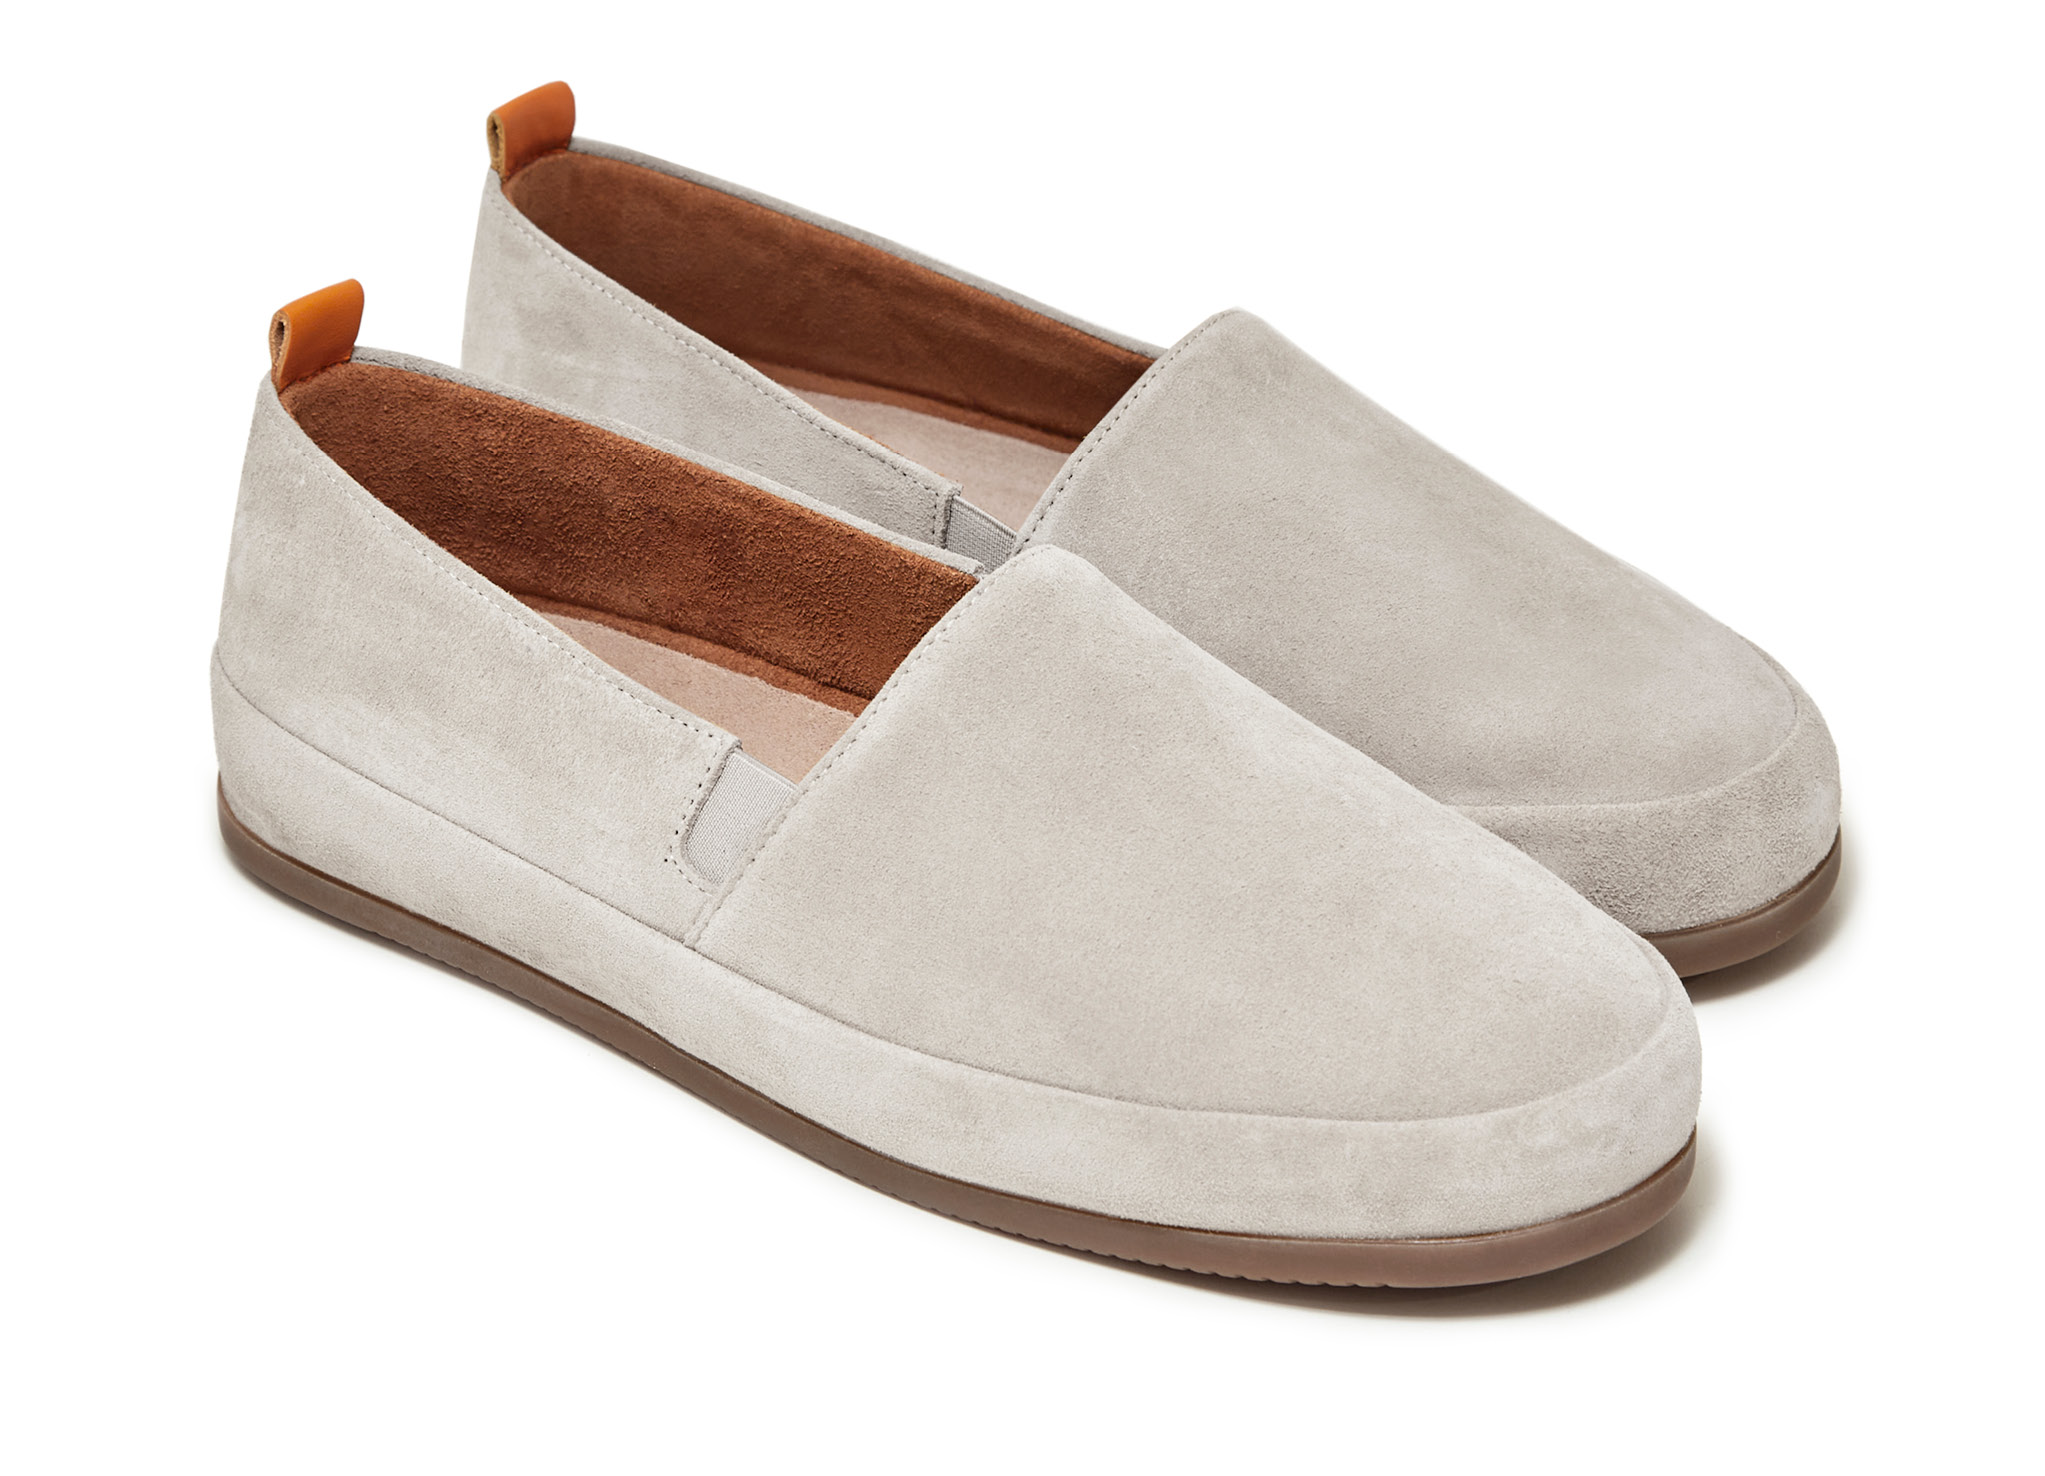 White Loafers for Men in Suede | MULO shoes